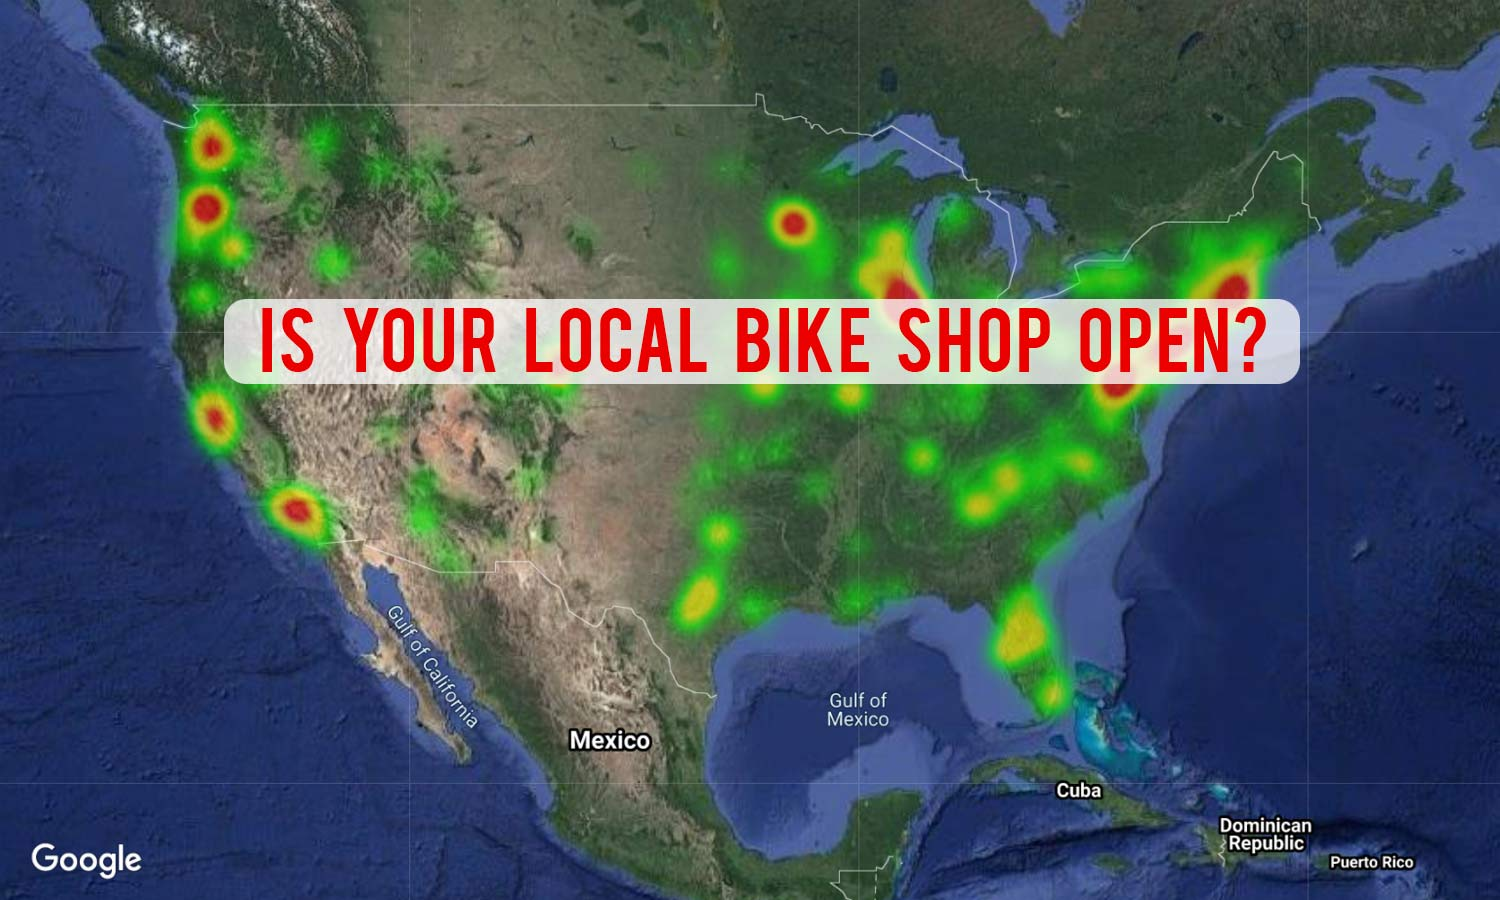 Bike Shop Status during COVID-19 pandemic: an interactive map